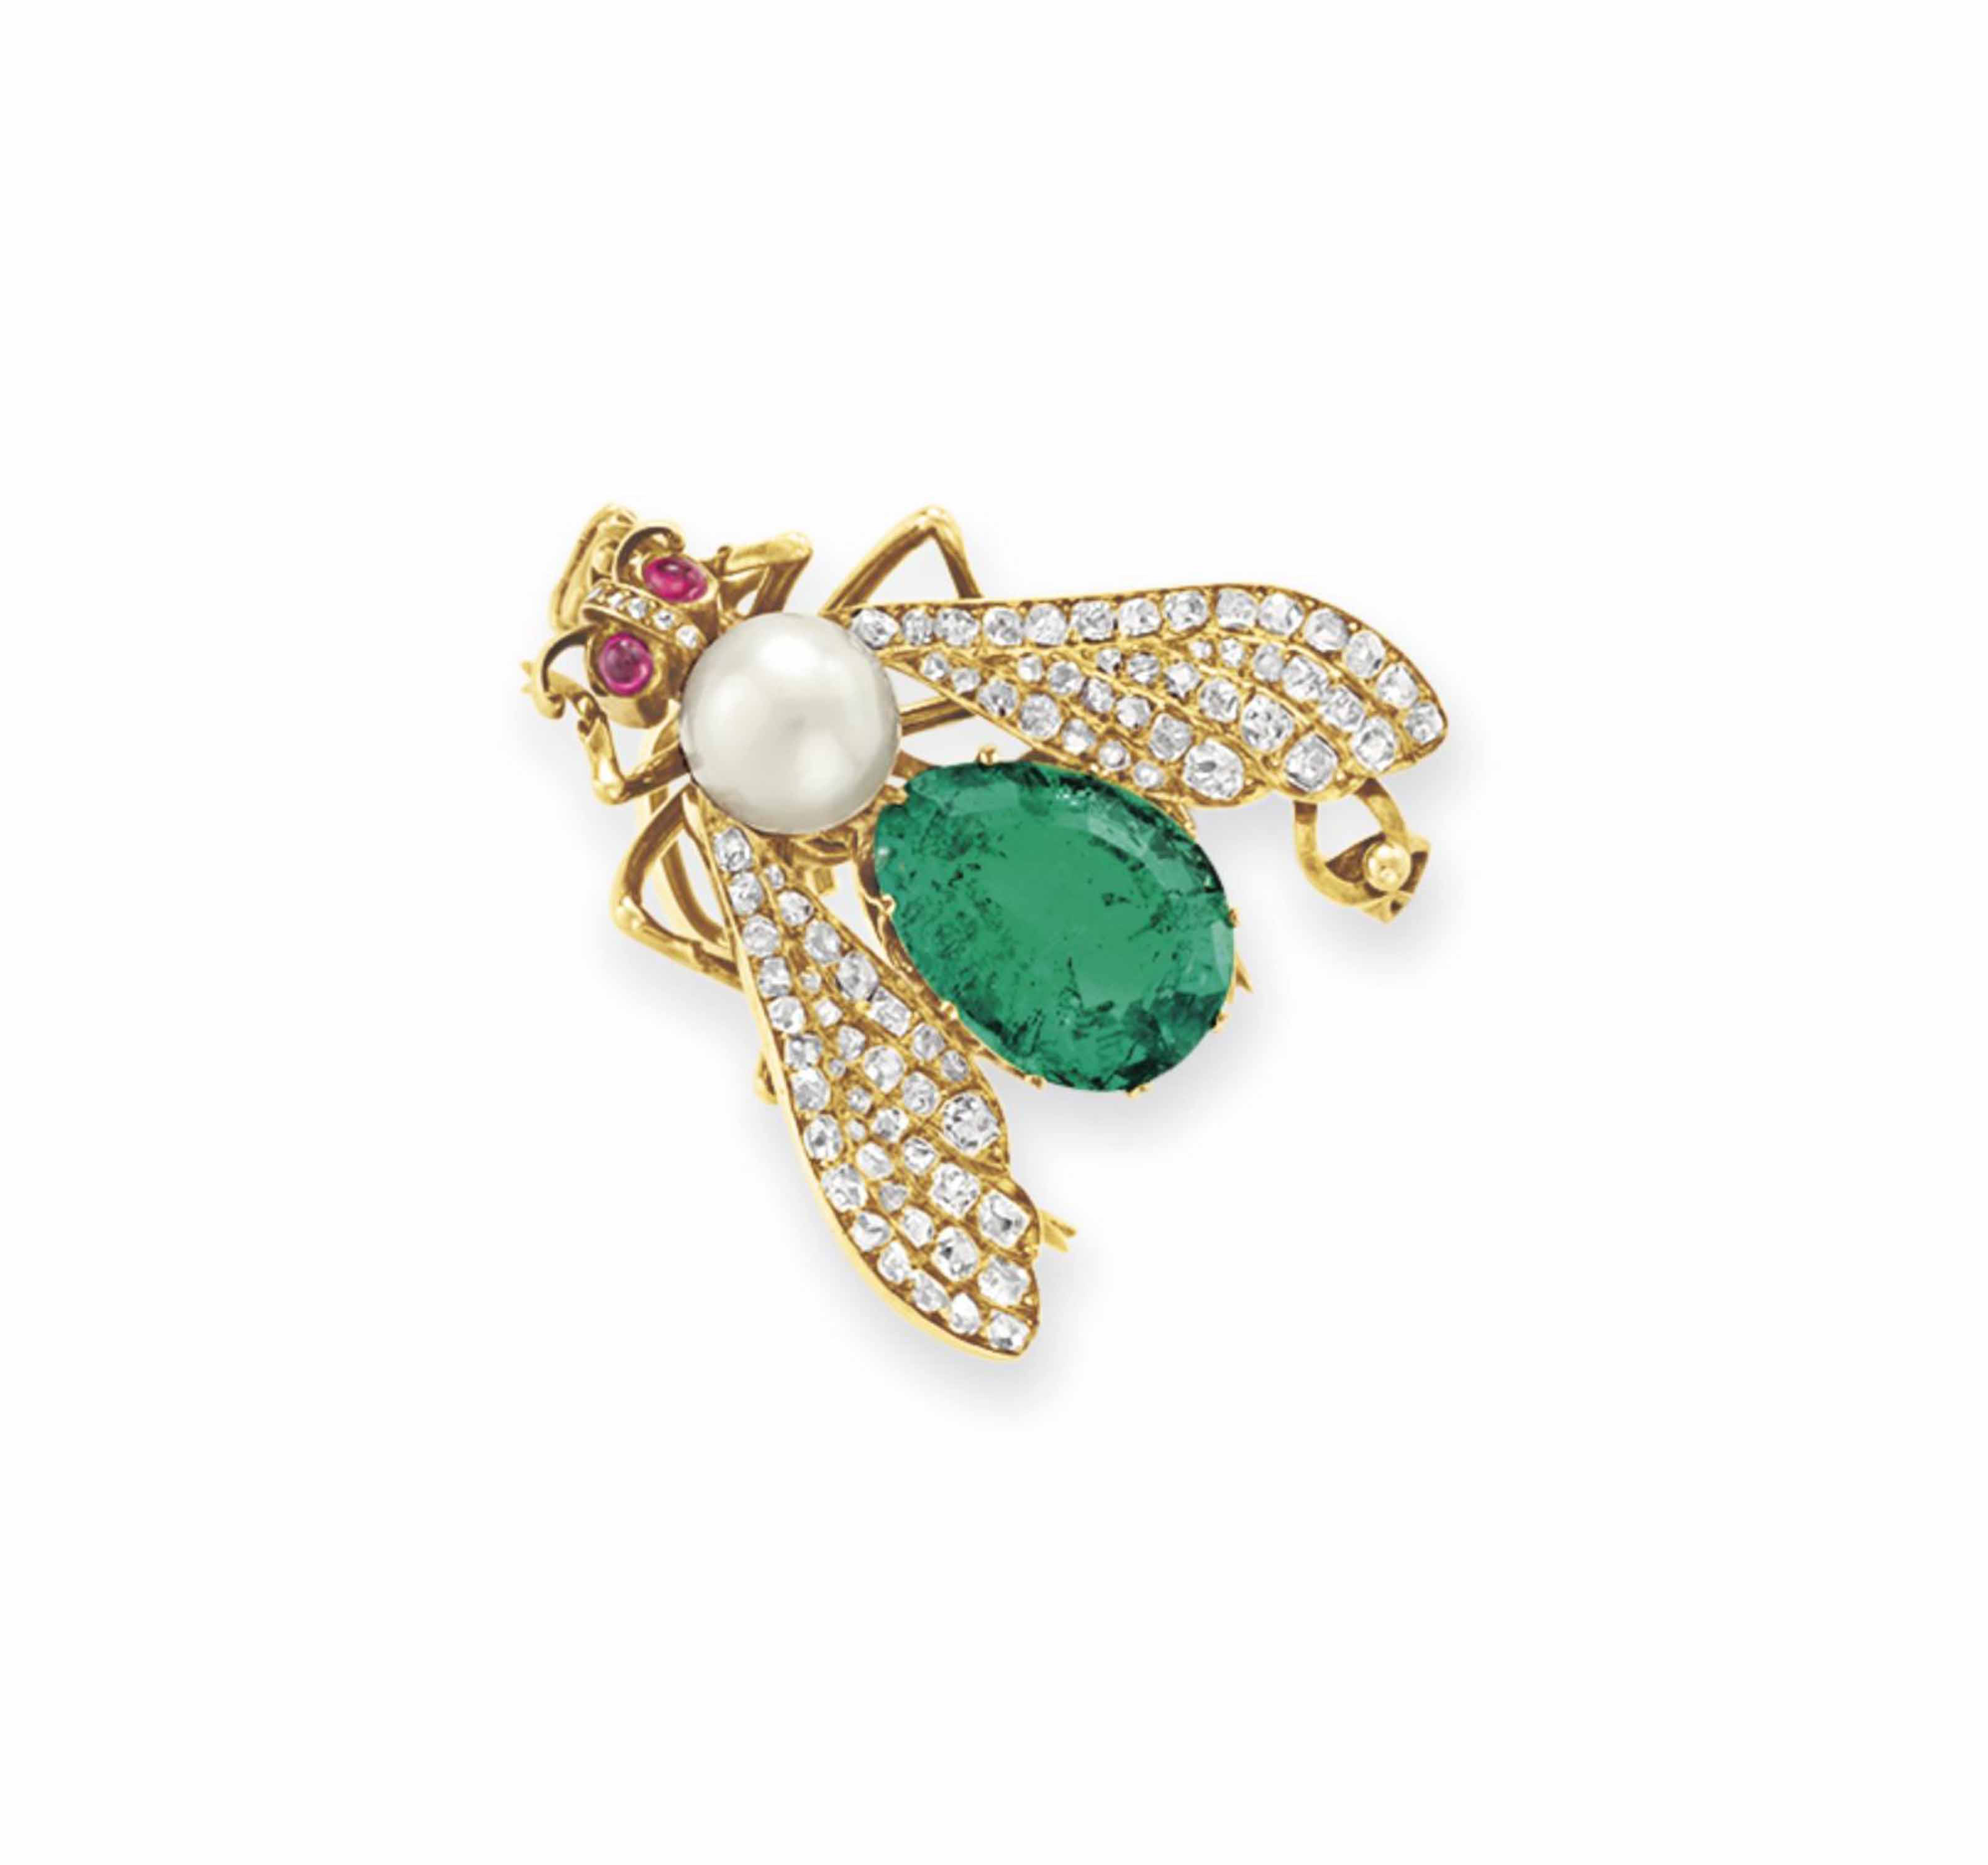 AN ANTIQUE PEARL, EMERALD AND